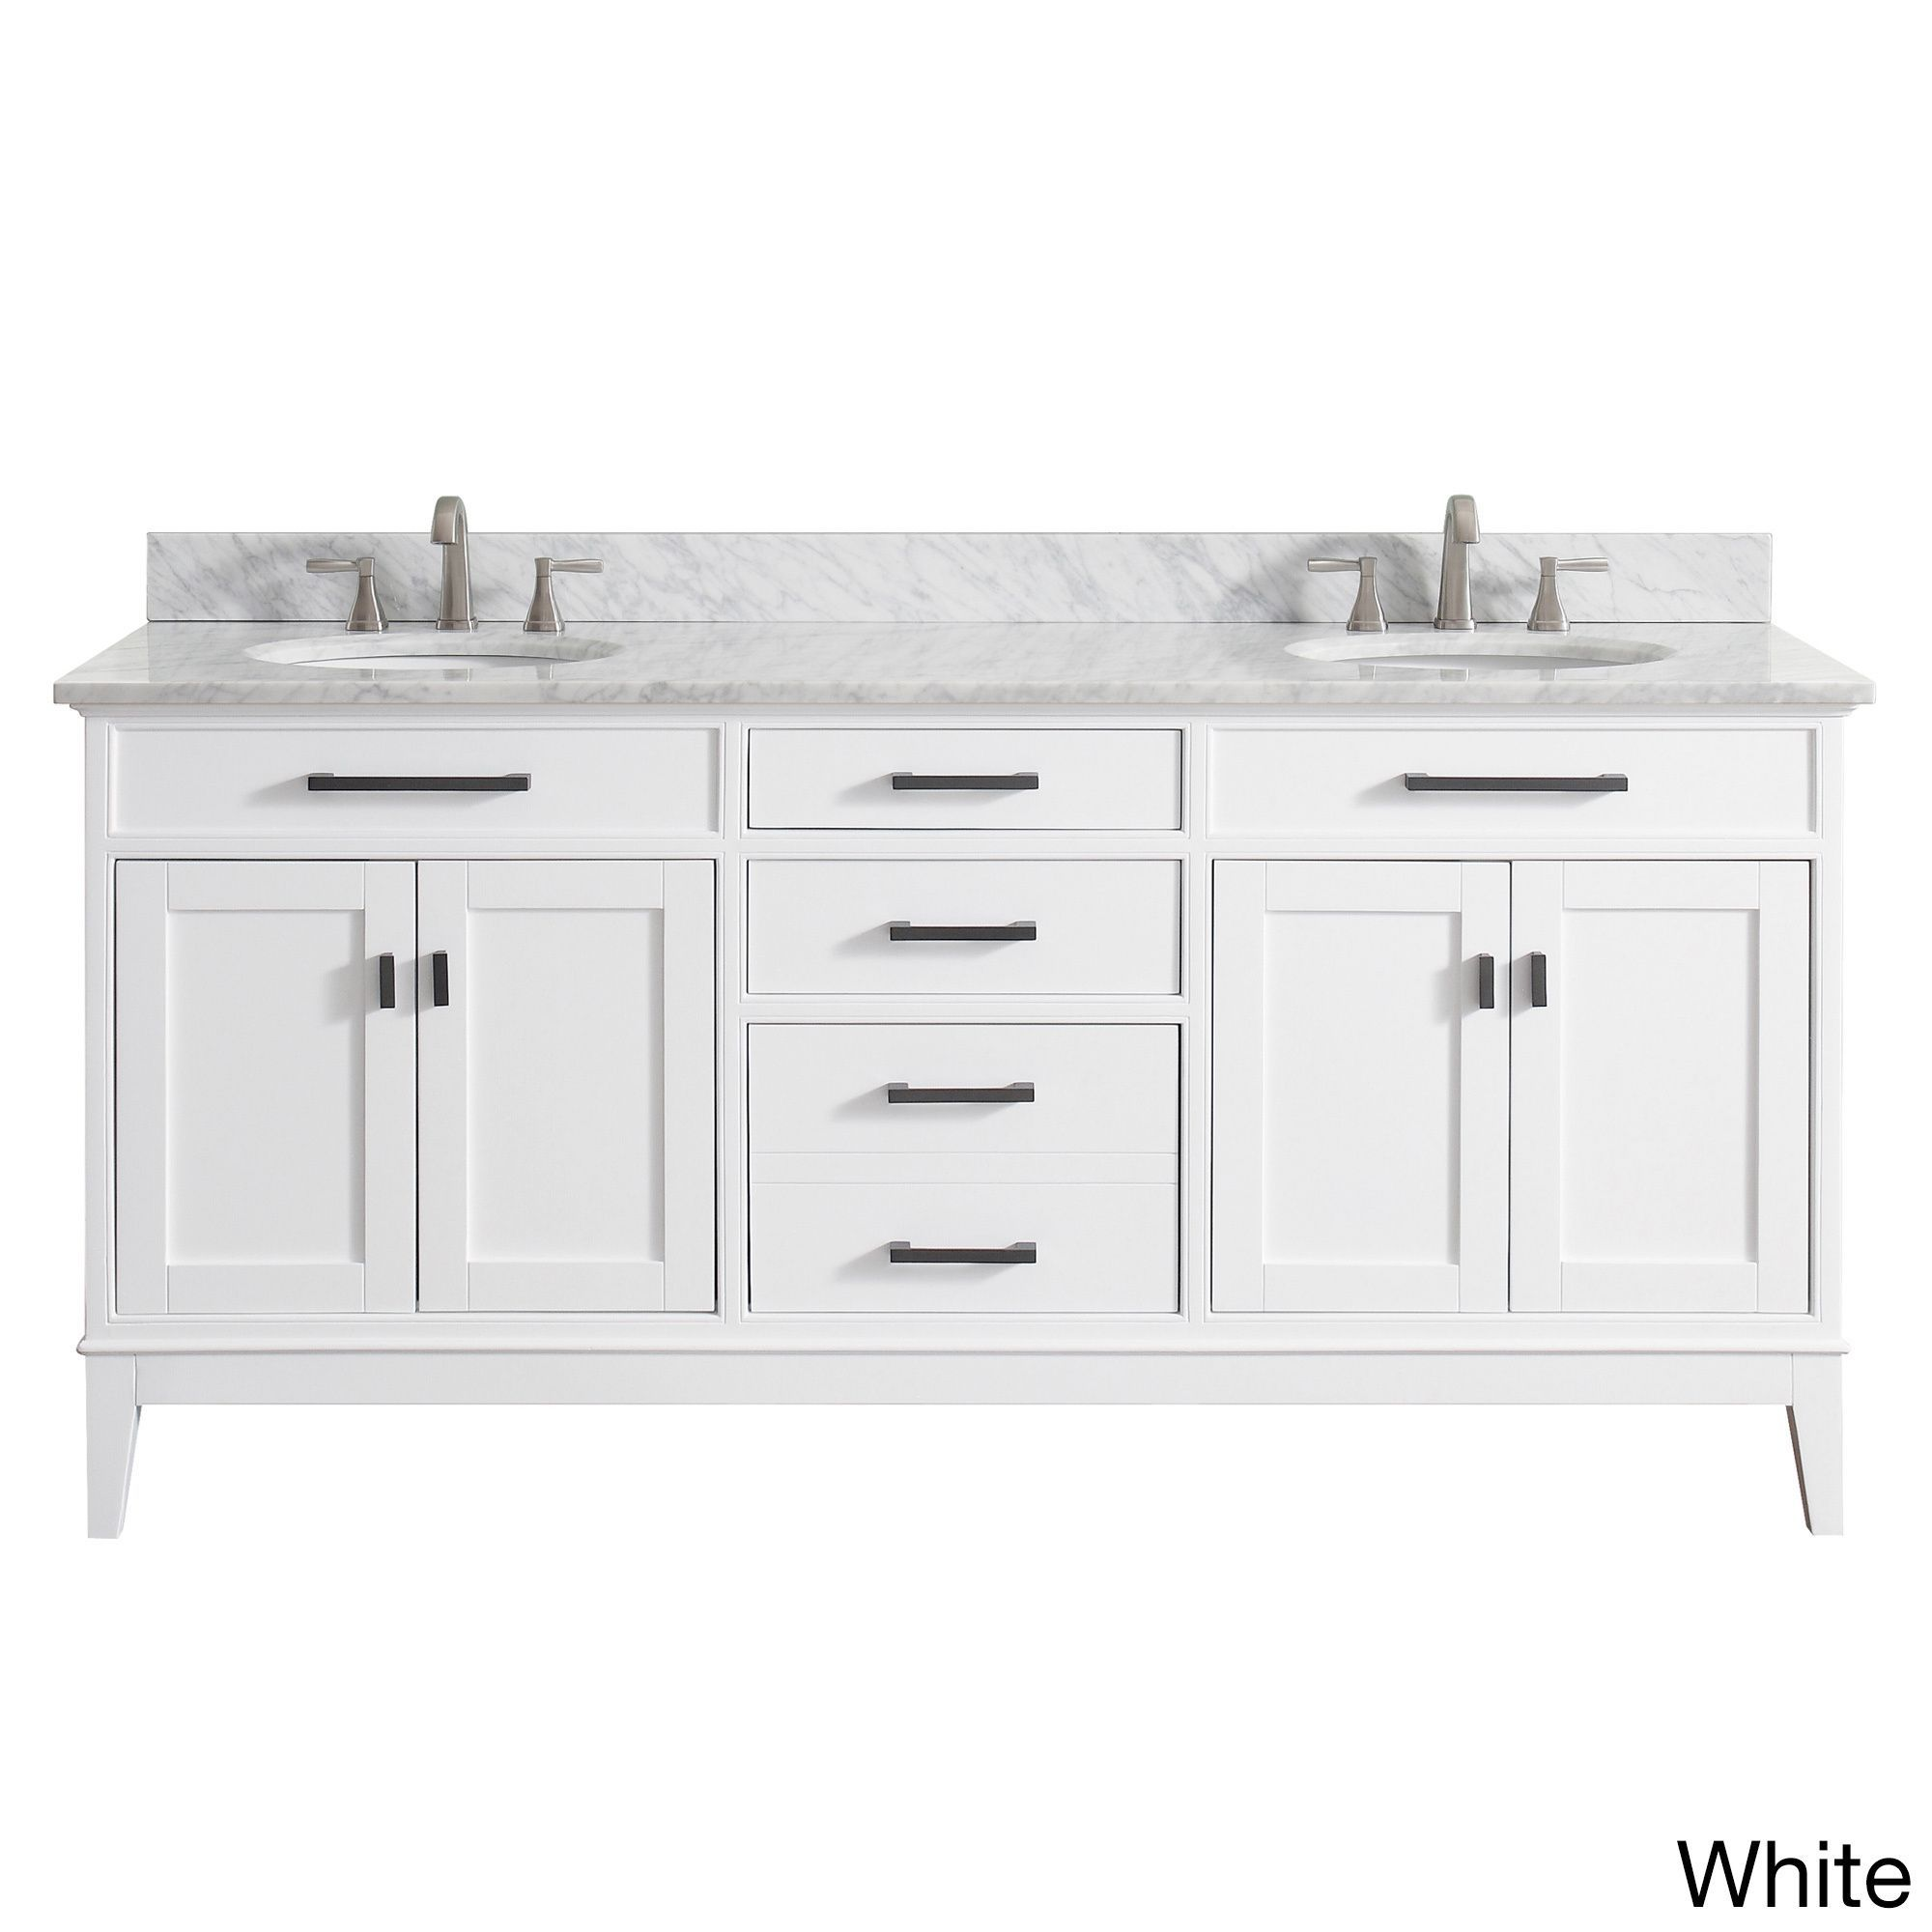 Avanity Madison 73 Inch Double Sink Vanity Combo In White With Top